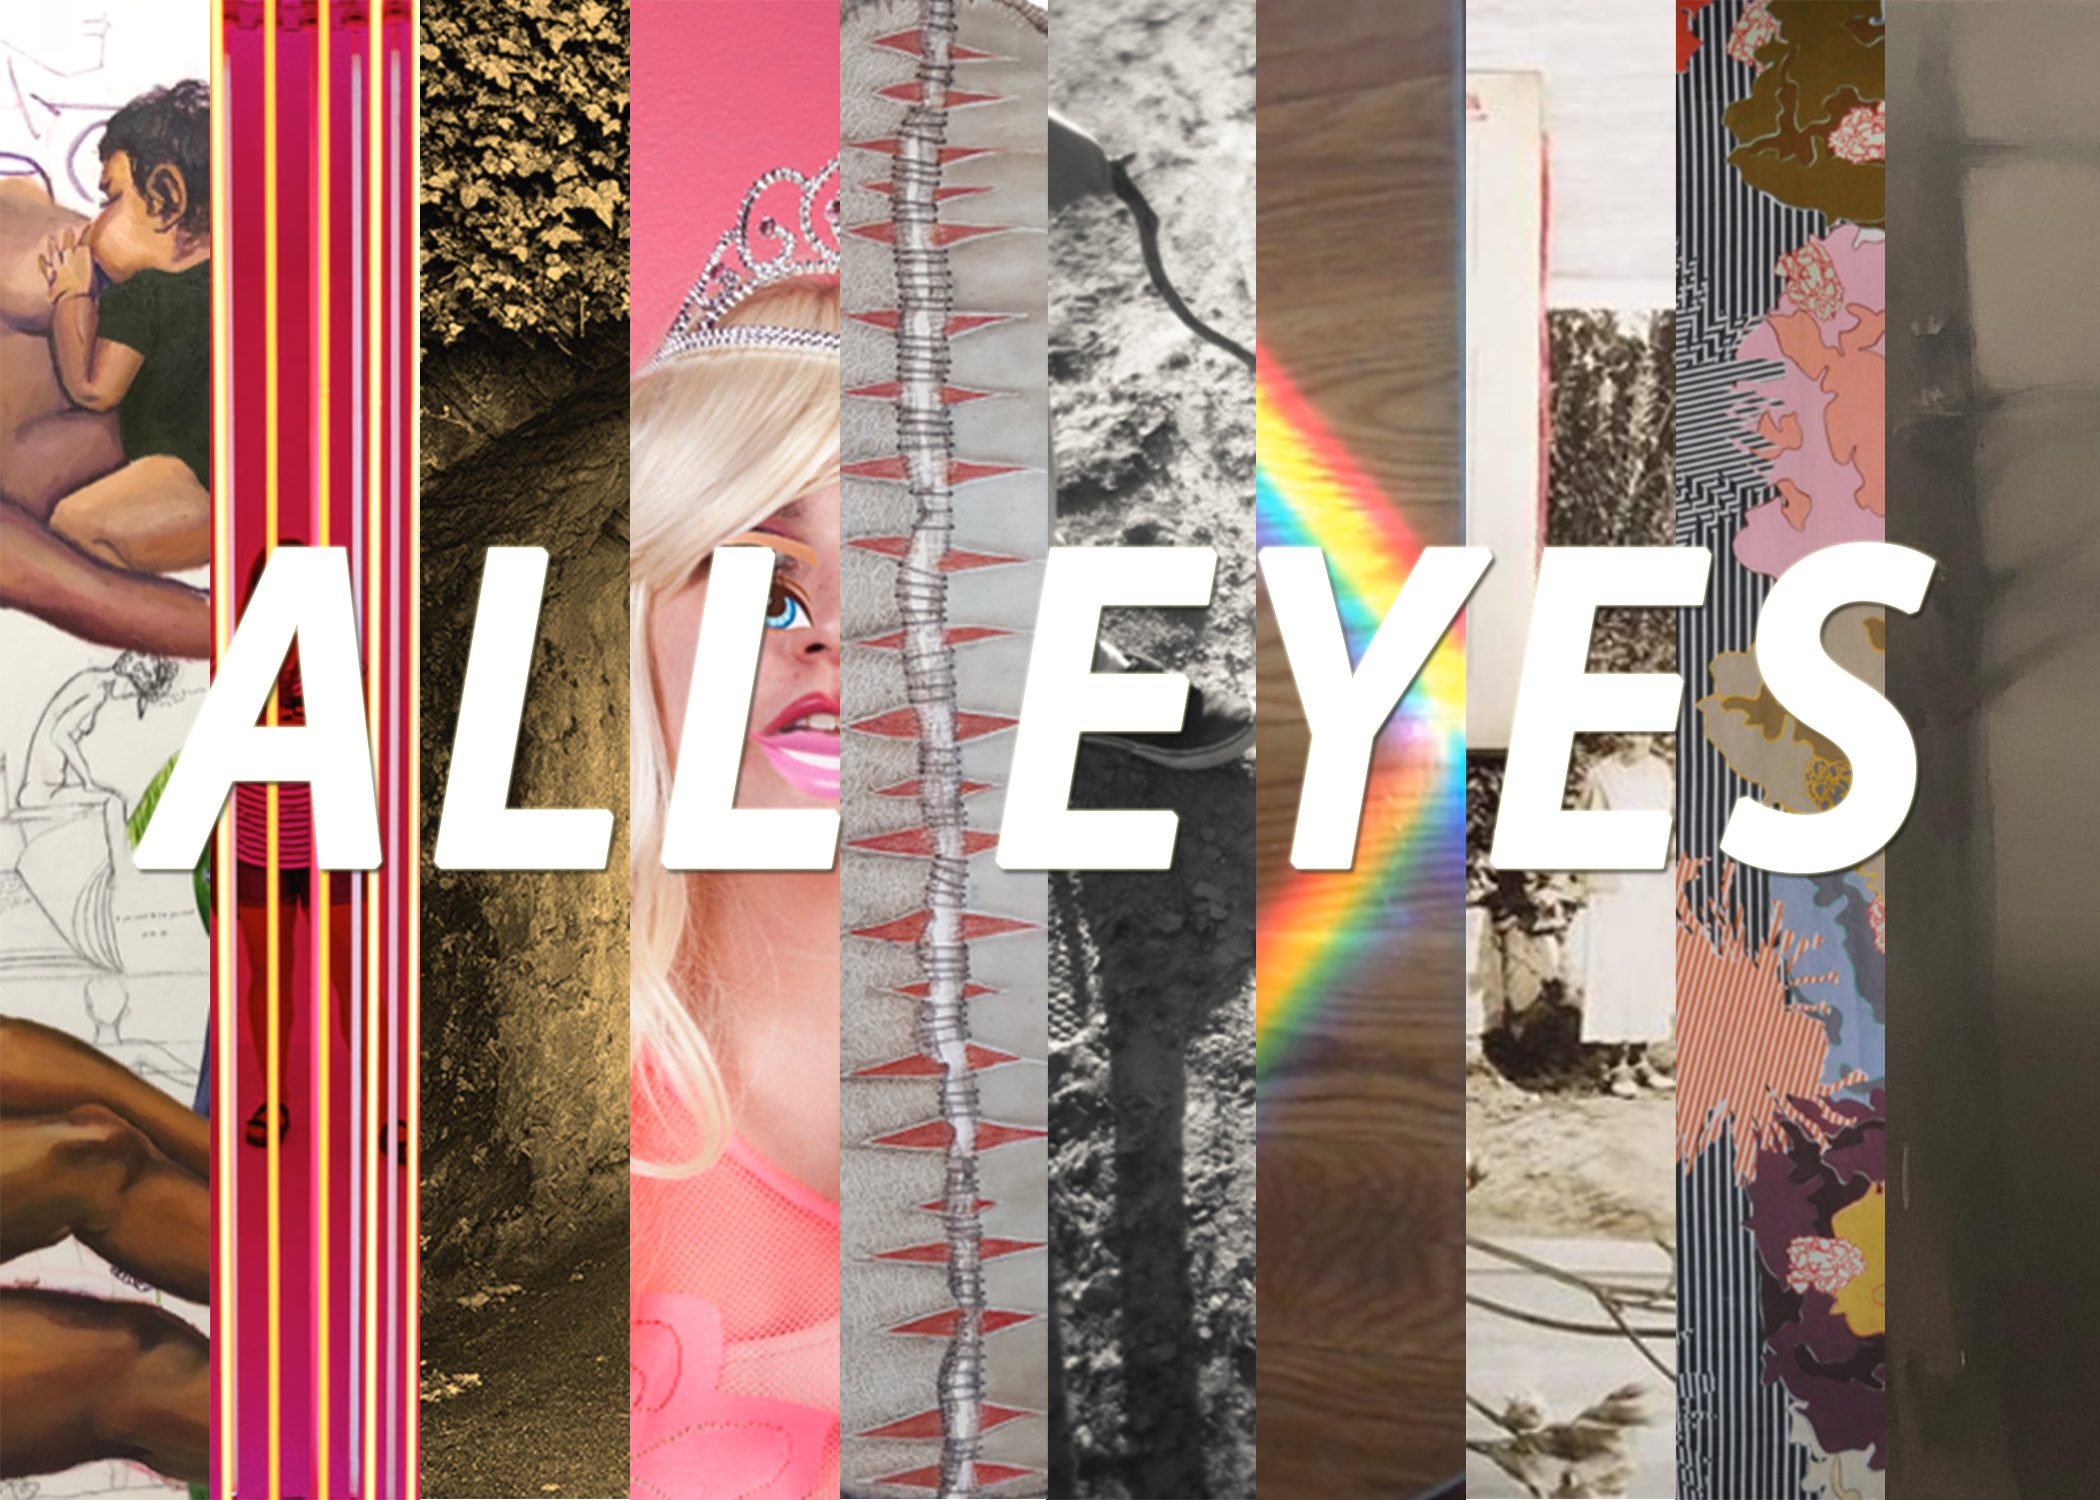 5x7 All Eyes Dec.jpg